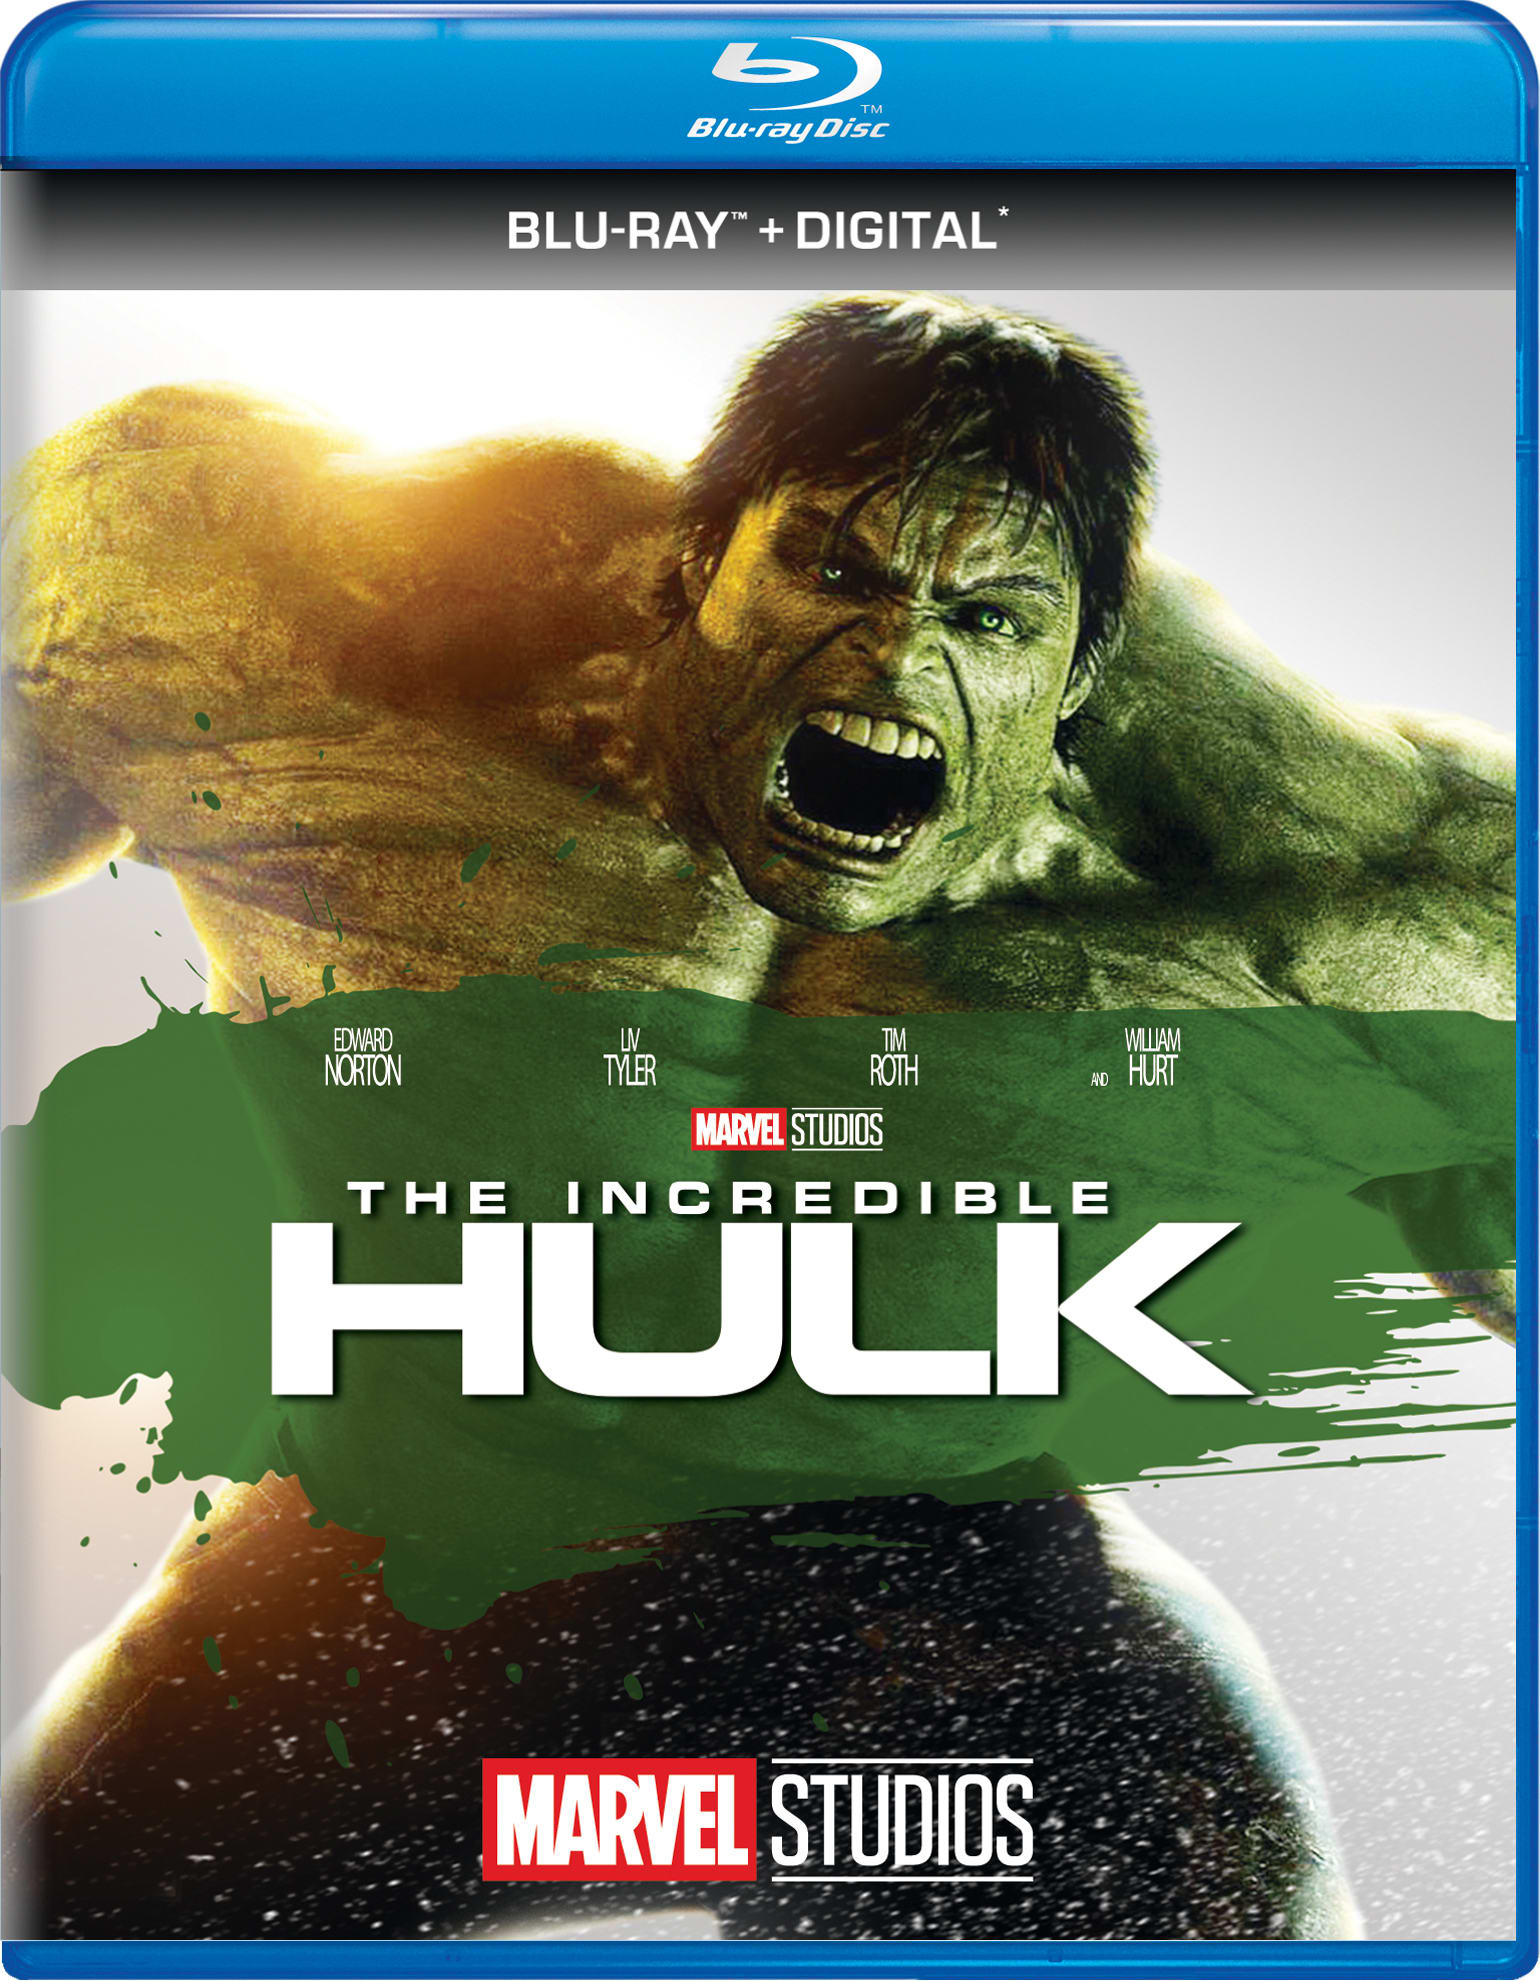 The Incredible Hulk (Digital) [Blu-ray]